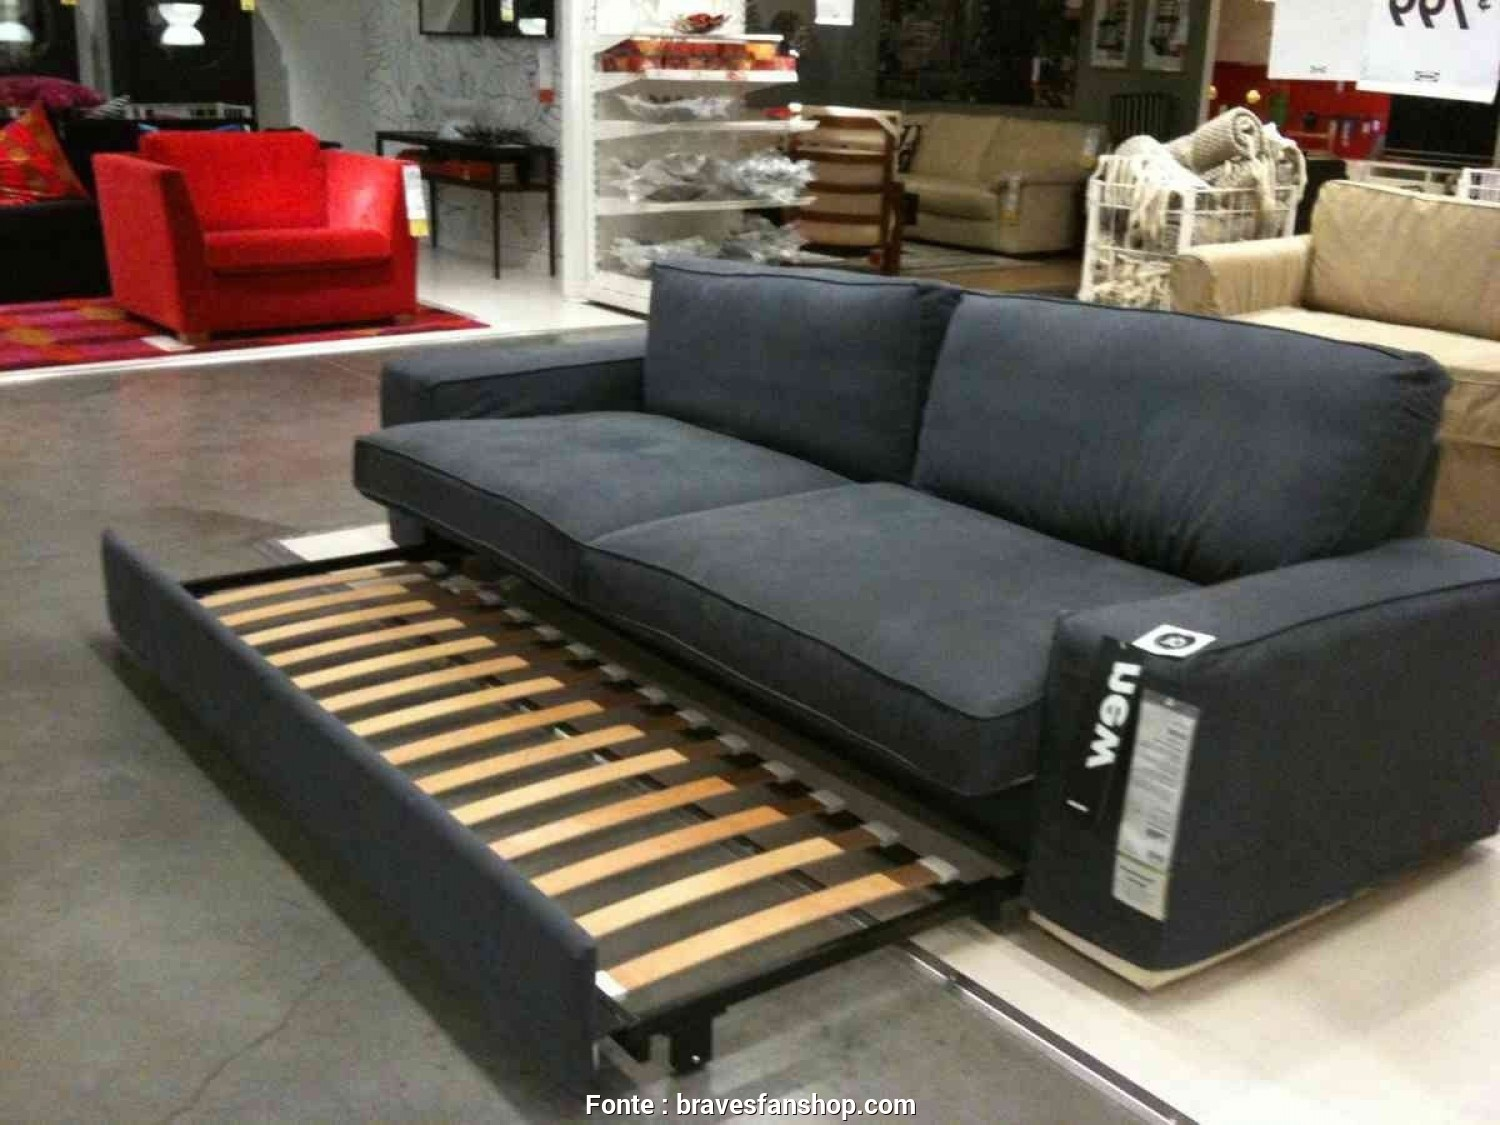 Ikea Backabro Opinie, Incredibile ... Ikea Sofa, Reviews Lovely Ikea Tidafors Sofa Inspirational Ikea Tidafors Sofa, Fresh Sofas